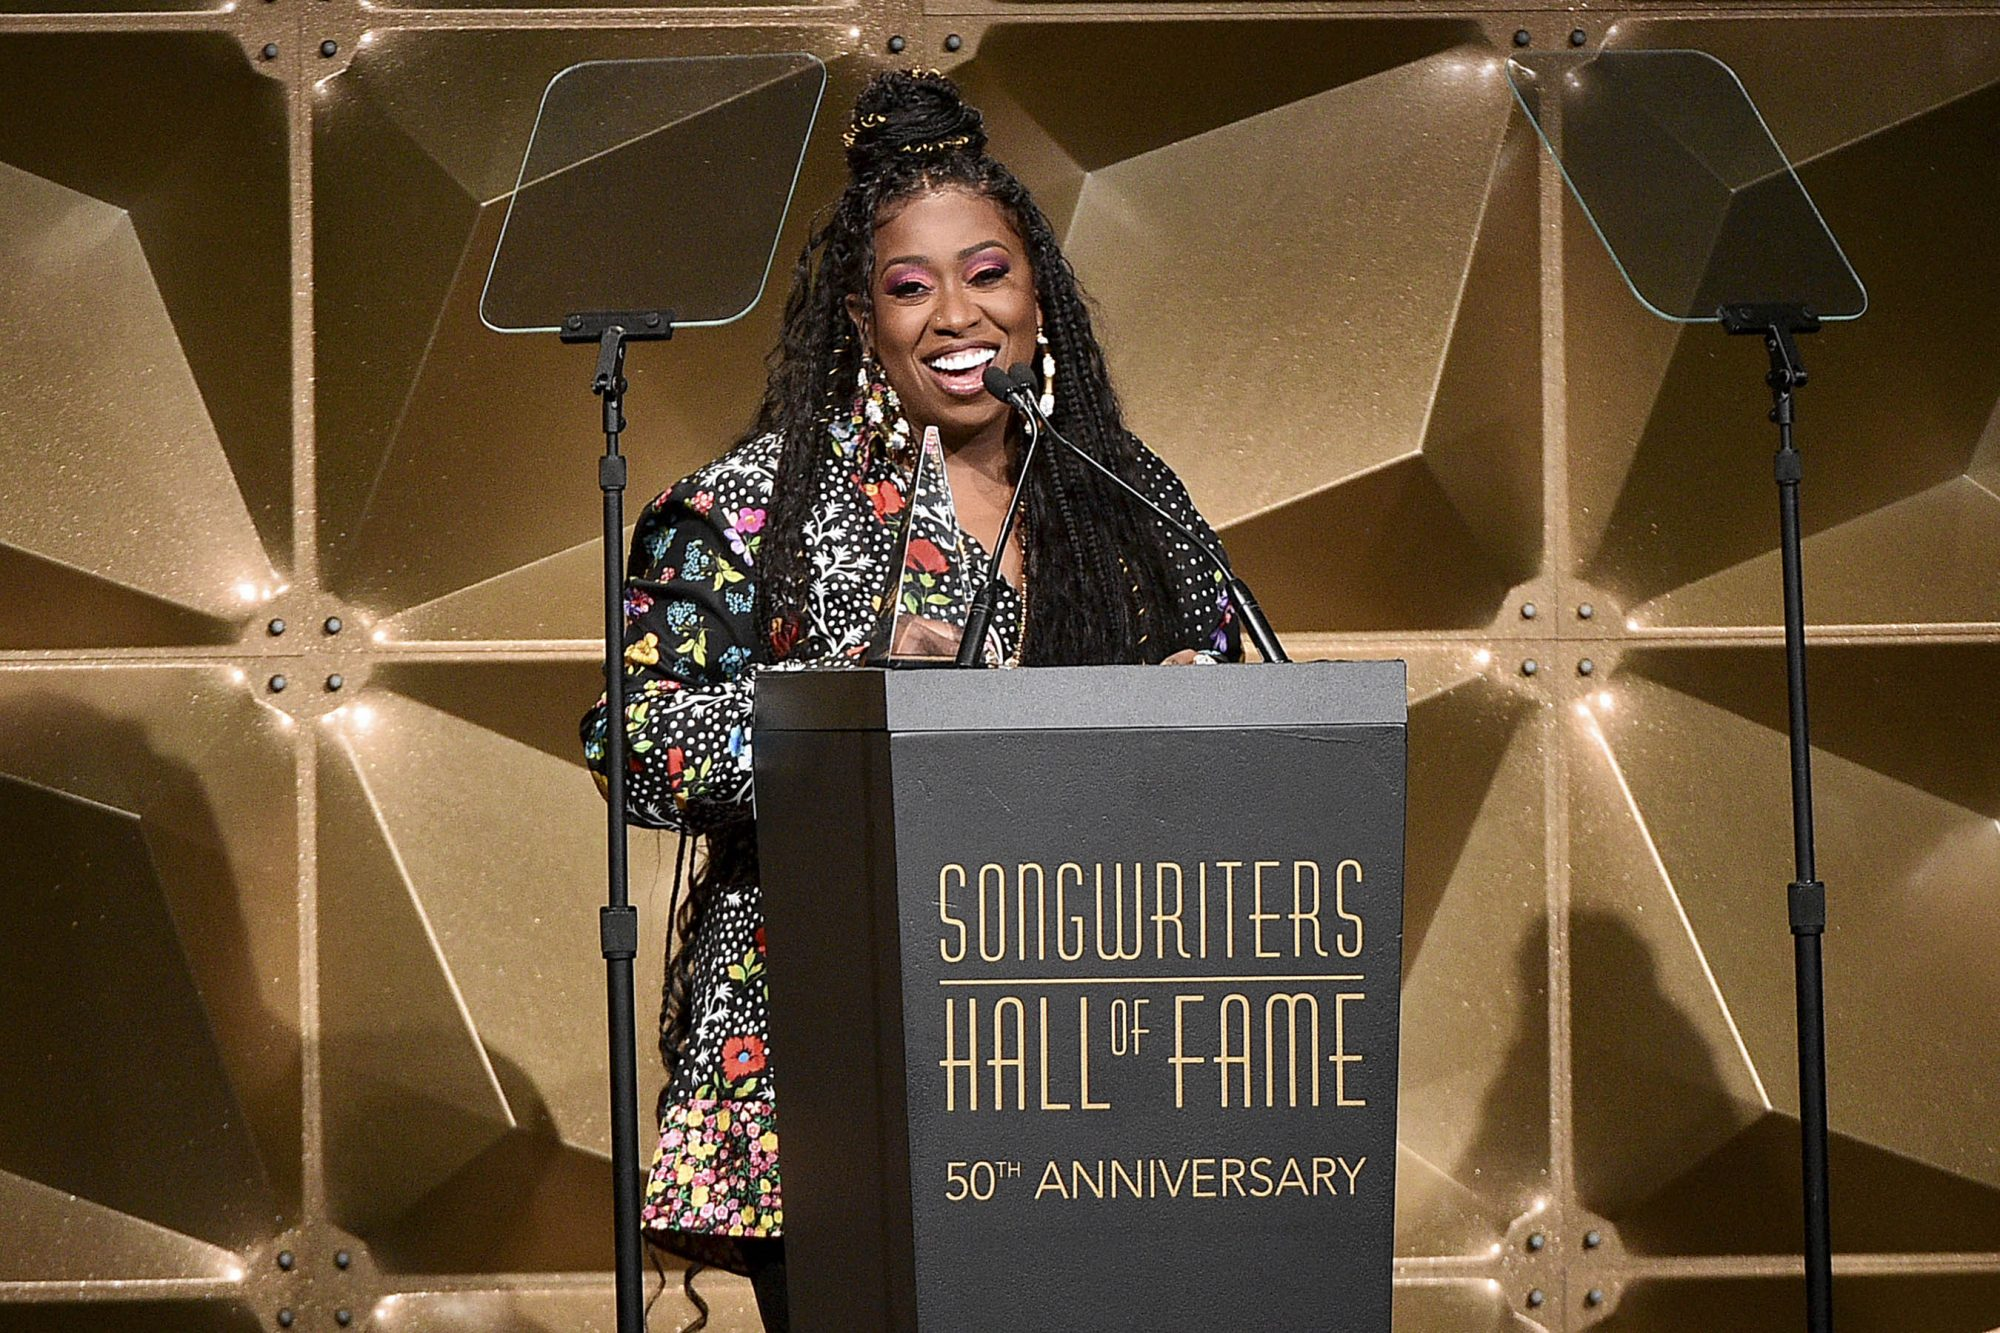 NEW YORK, NEW YORK - JUNE 13: Inductee Missy Elliott speaks onstage during the Songwriters Hall Of Fame 50th Annual Induction And Awards Dinner at The New York Marriott Marquis on June 13, 2019 in New York City. (Photo by Theo Wargo/Getty Images for Songwriters Hall Of Fame )